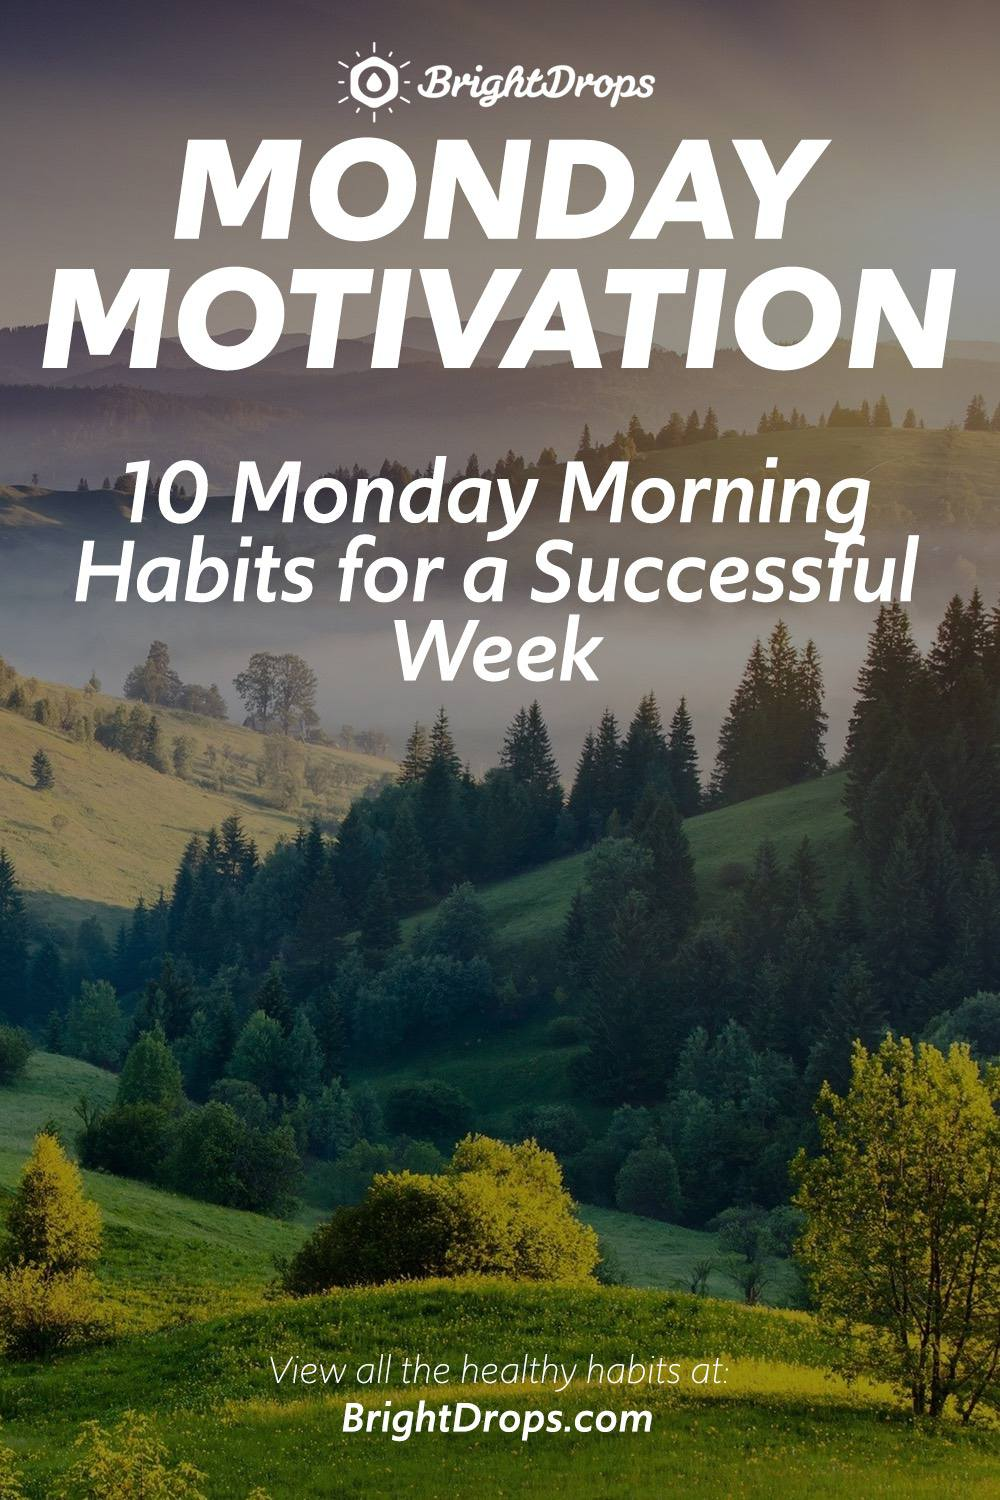 Monday Motivation - 10 Monday Morning Habits for a Successful Week